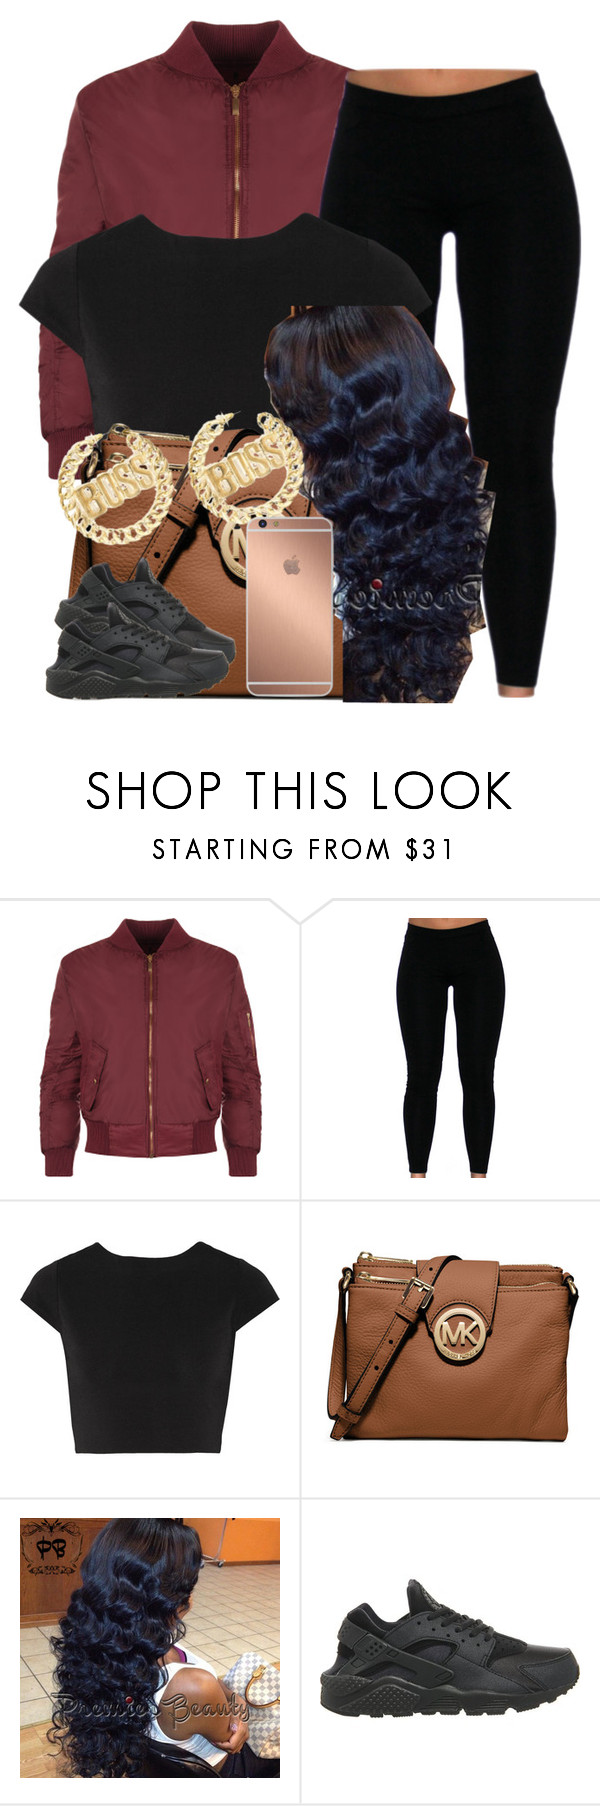 """""""."""" by newtrillvibes ❤ liked on Polyvore featuring WearAll, Alice + Olivia, MICHAEL Michael Kors, NIKE, Mura, women's clothing, women, female, woman and misses"""